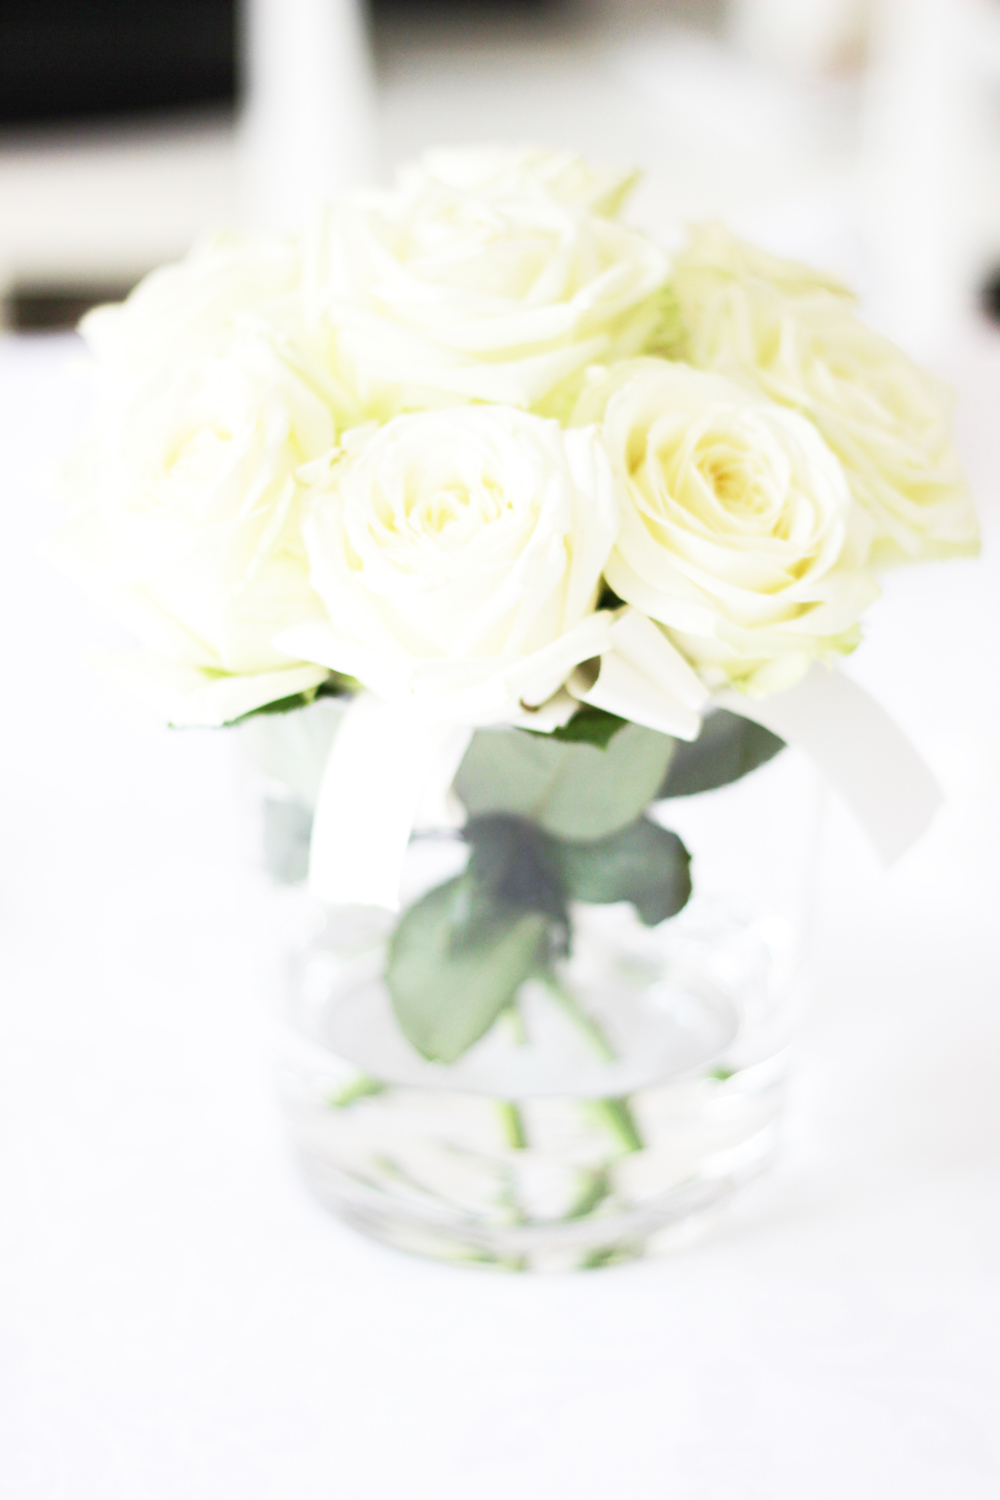 fatimayarie-white-flowers-homedecor-dinner-party-fashionblog-img_1331